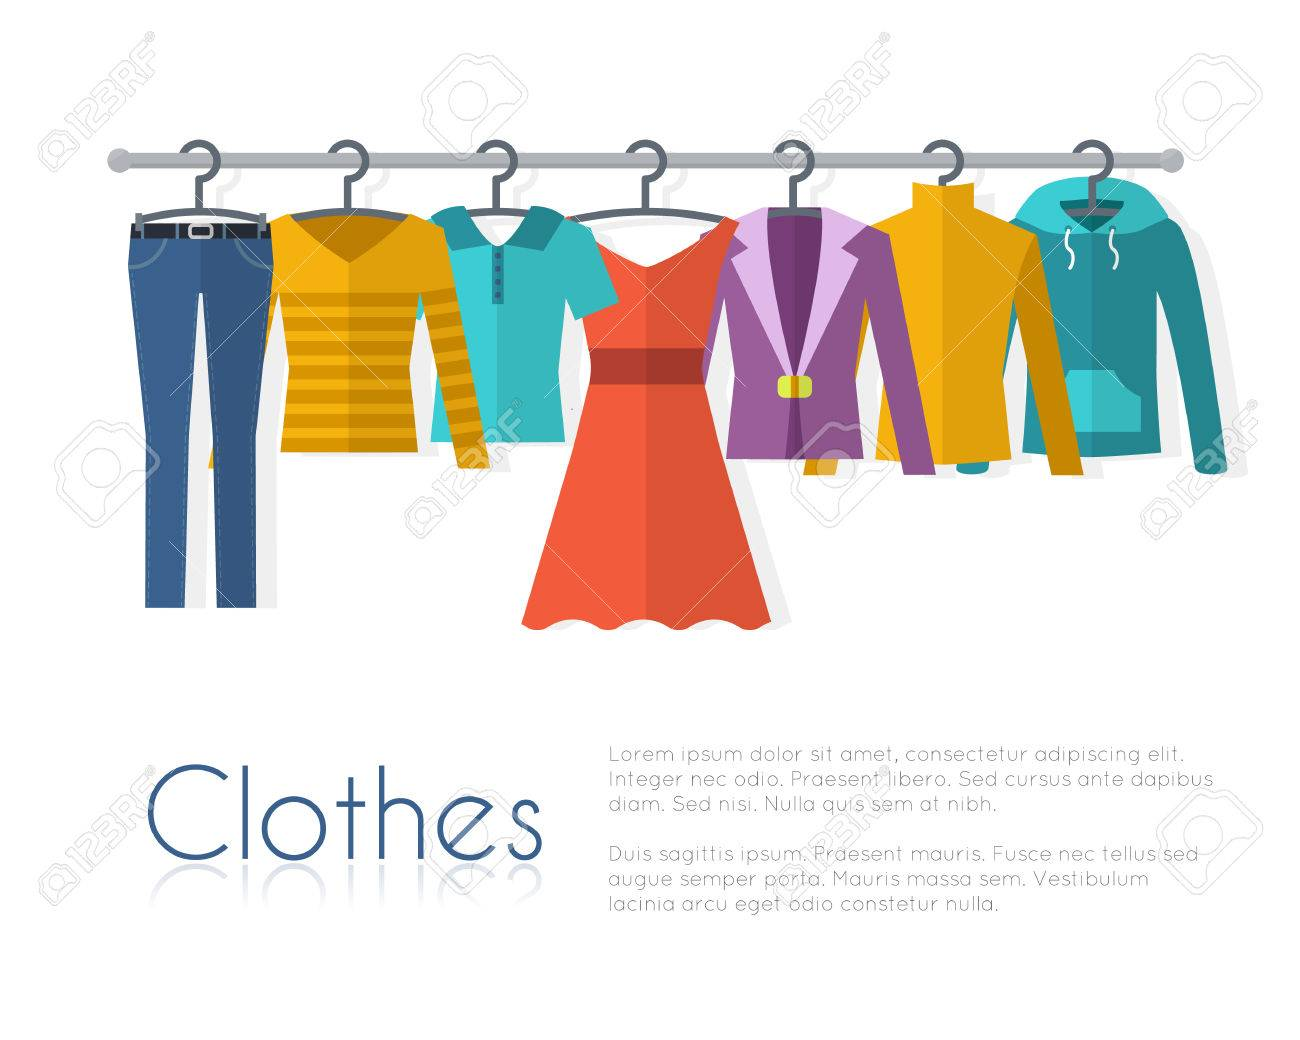 Racks with clothes on hangers. Flat style vector illustration. - 52617197